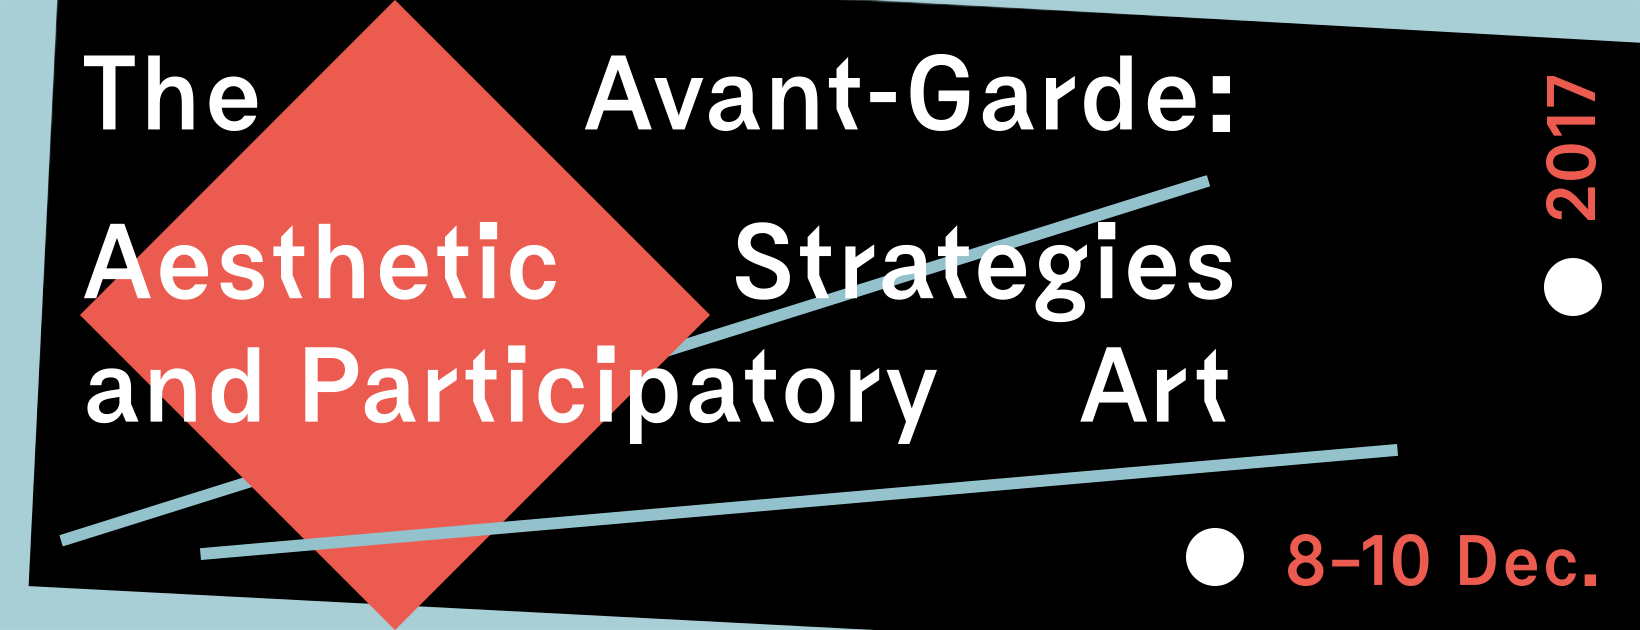 The Avant-Garde: Aesthetic Strategies and Participatory Art